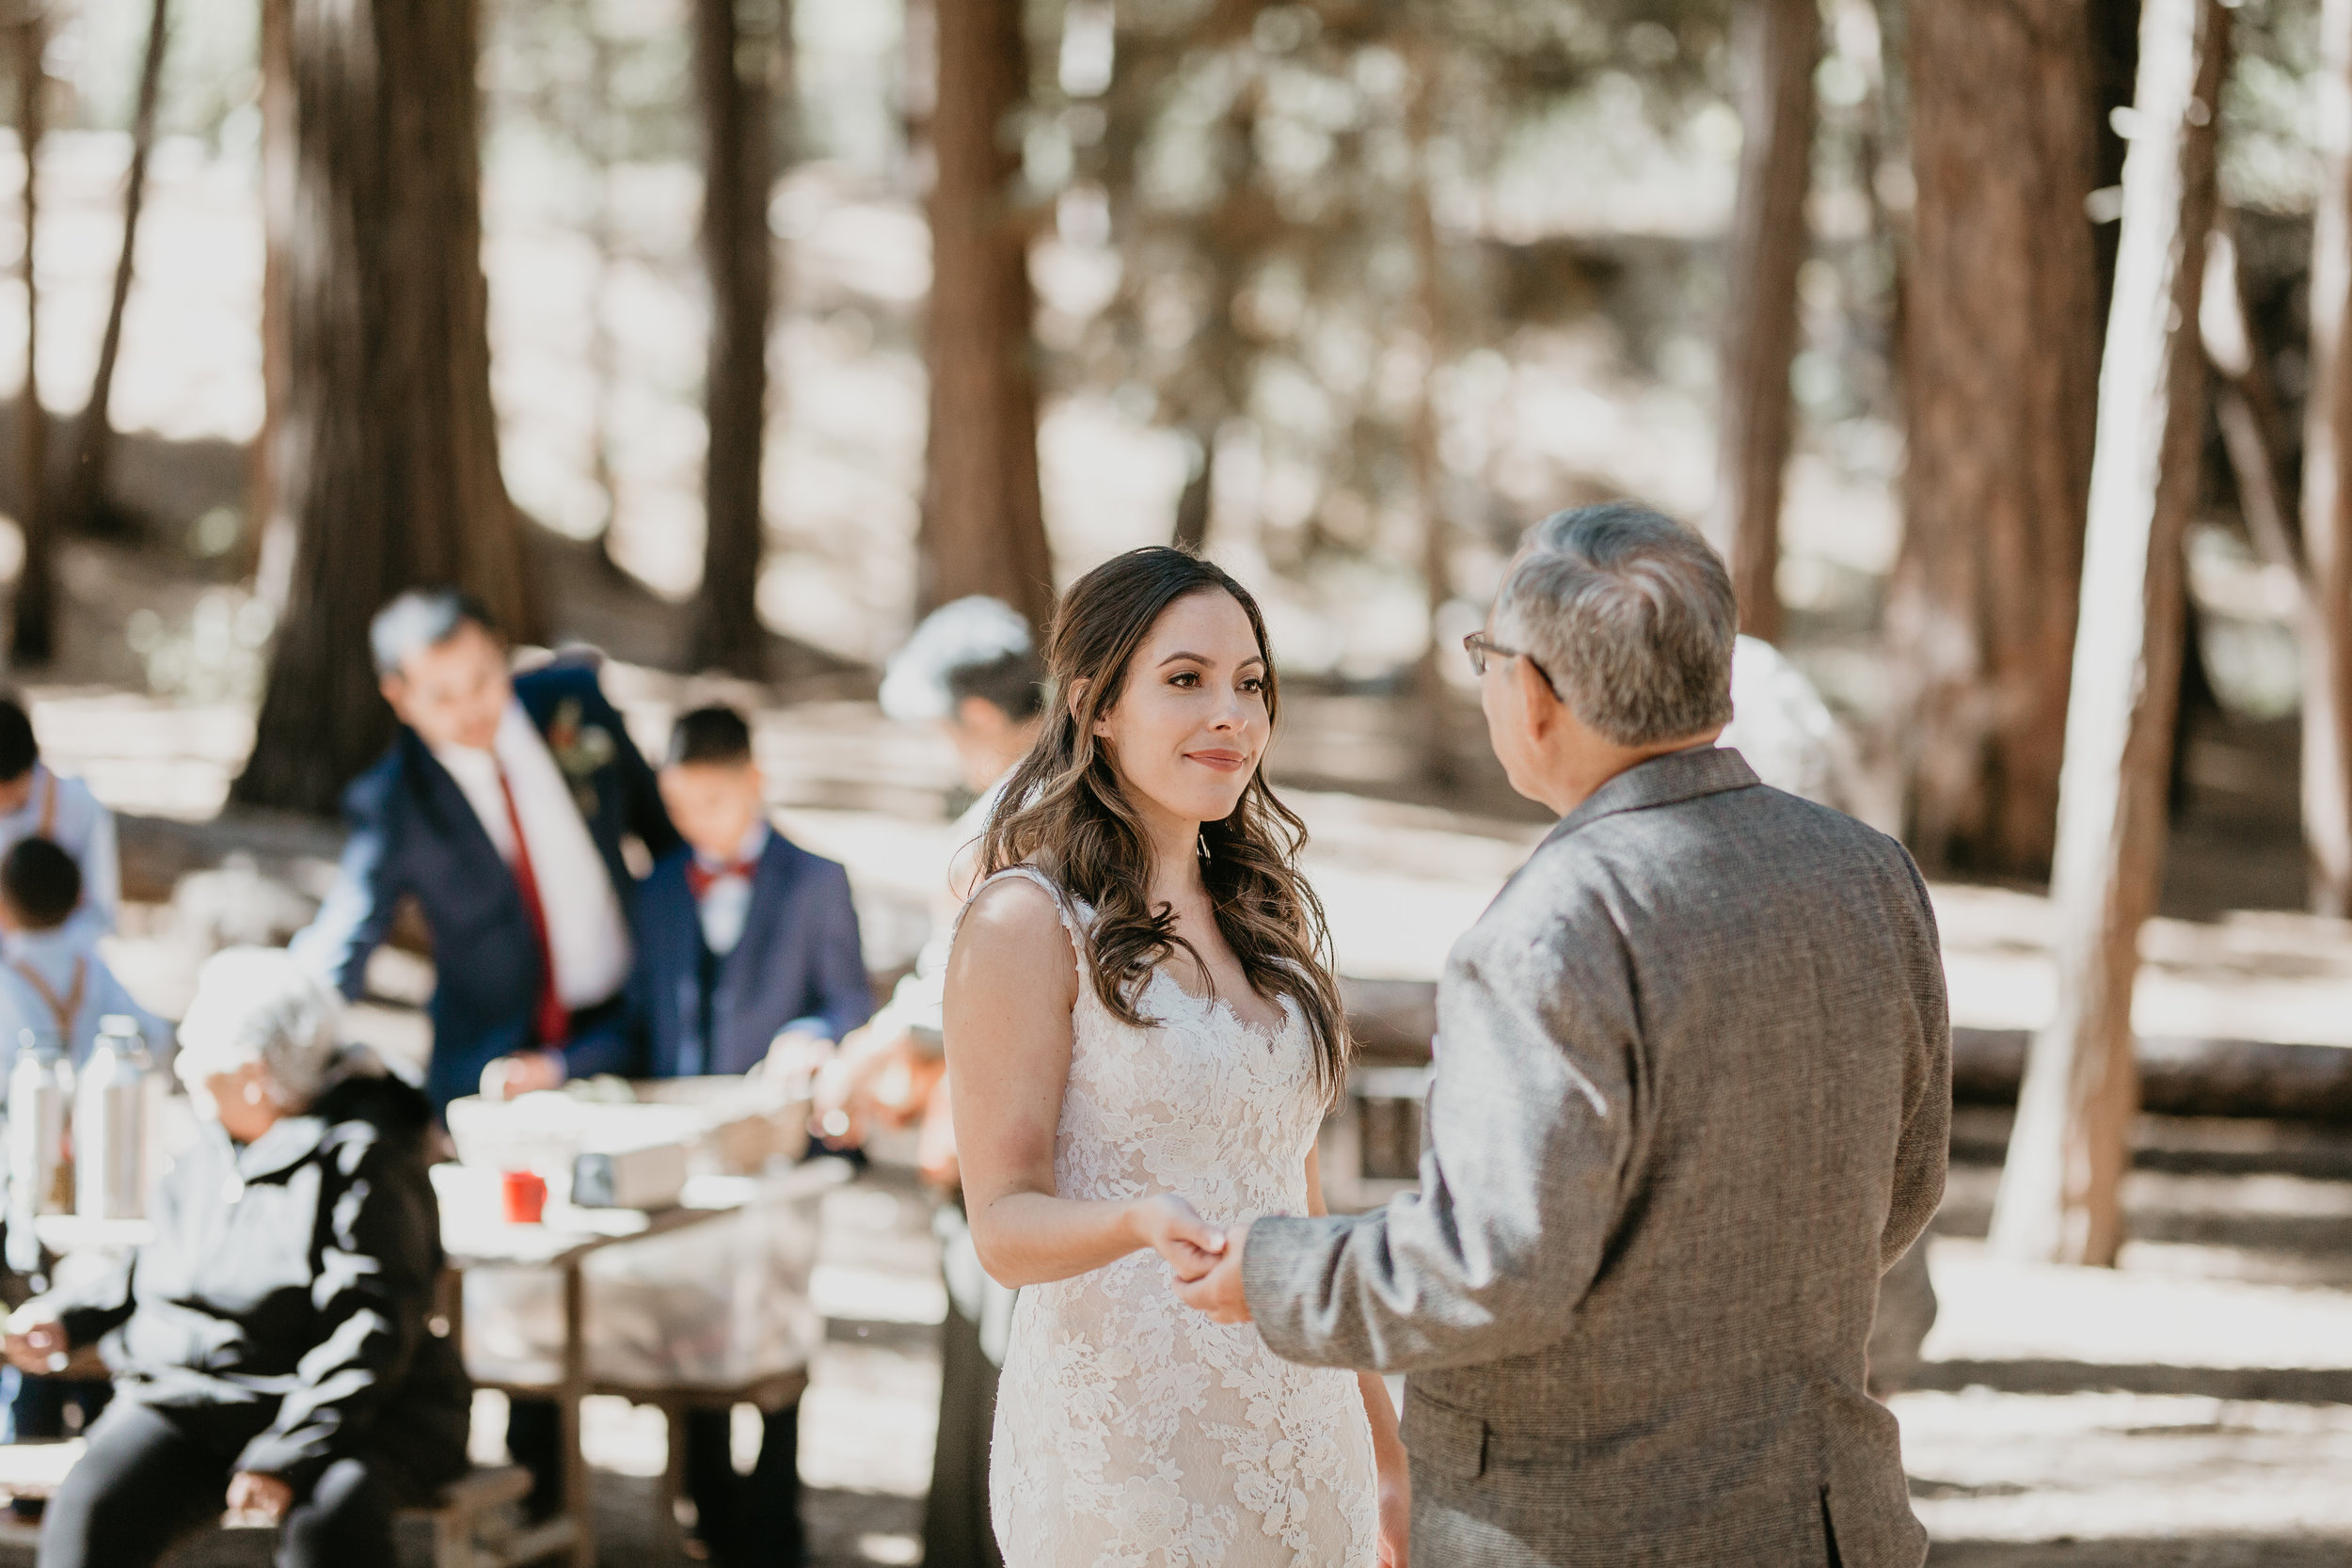 nicole-daacke-photography-intimate-elopement-wedding-yosemite-national-park-california-taft-point-sunset-photos-yosemite-valley-tunnel-view-first-look-sunrise-golden-granite-hiking-adventure-wedding-adventurous-elopement-photographer-83.jpg